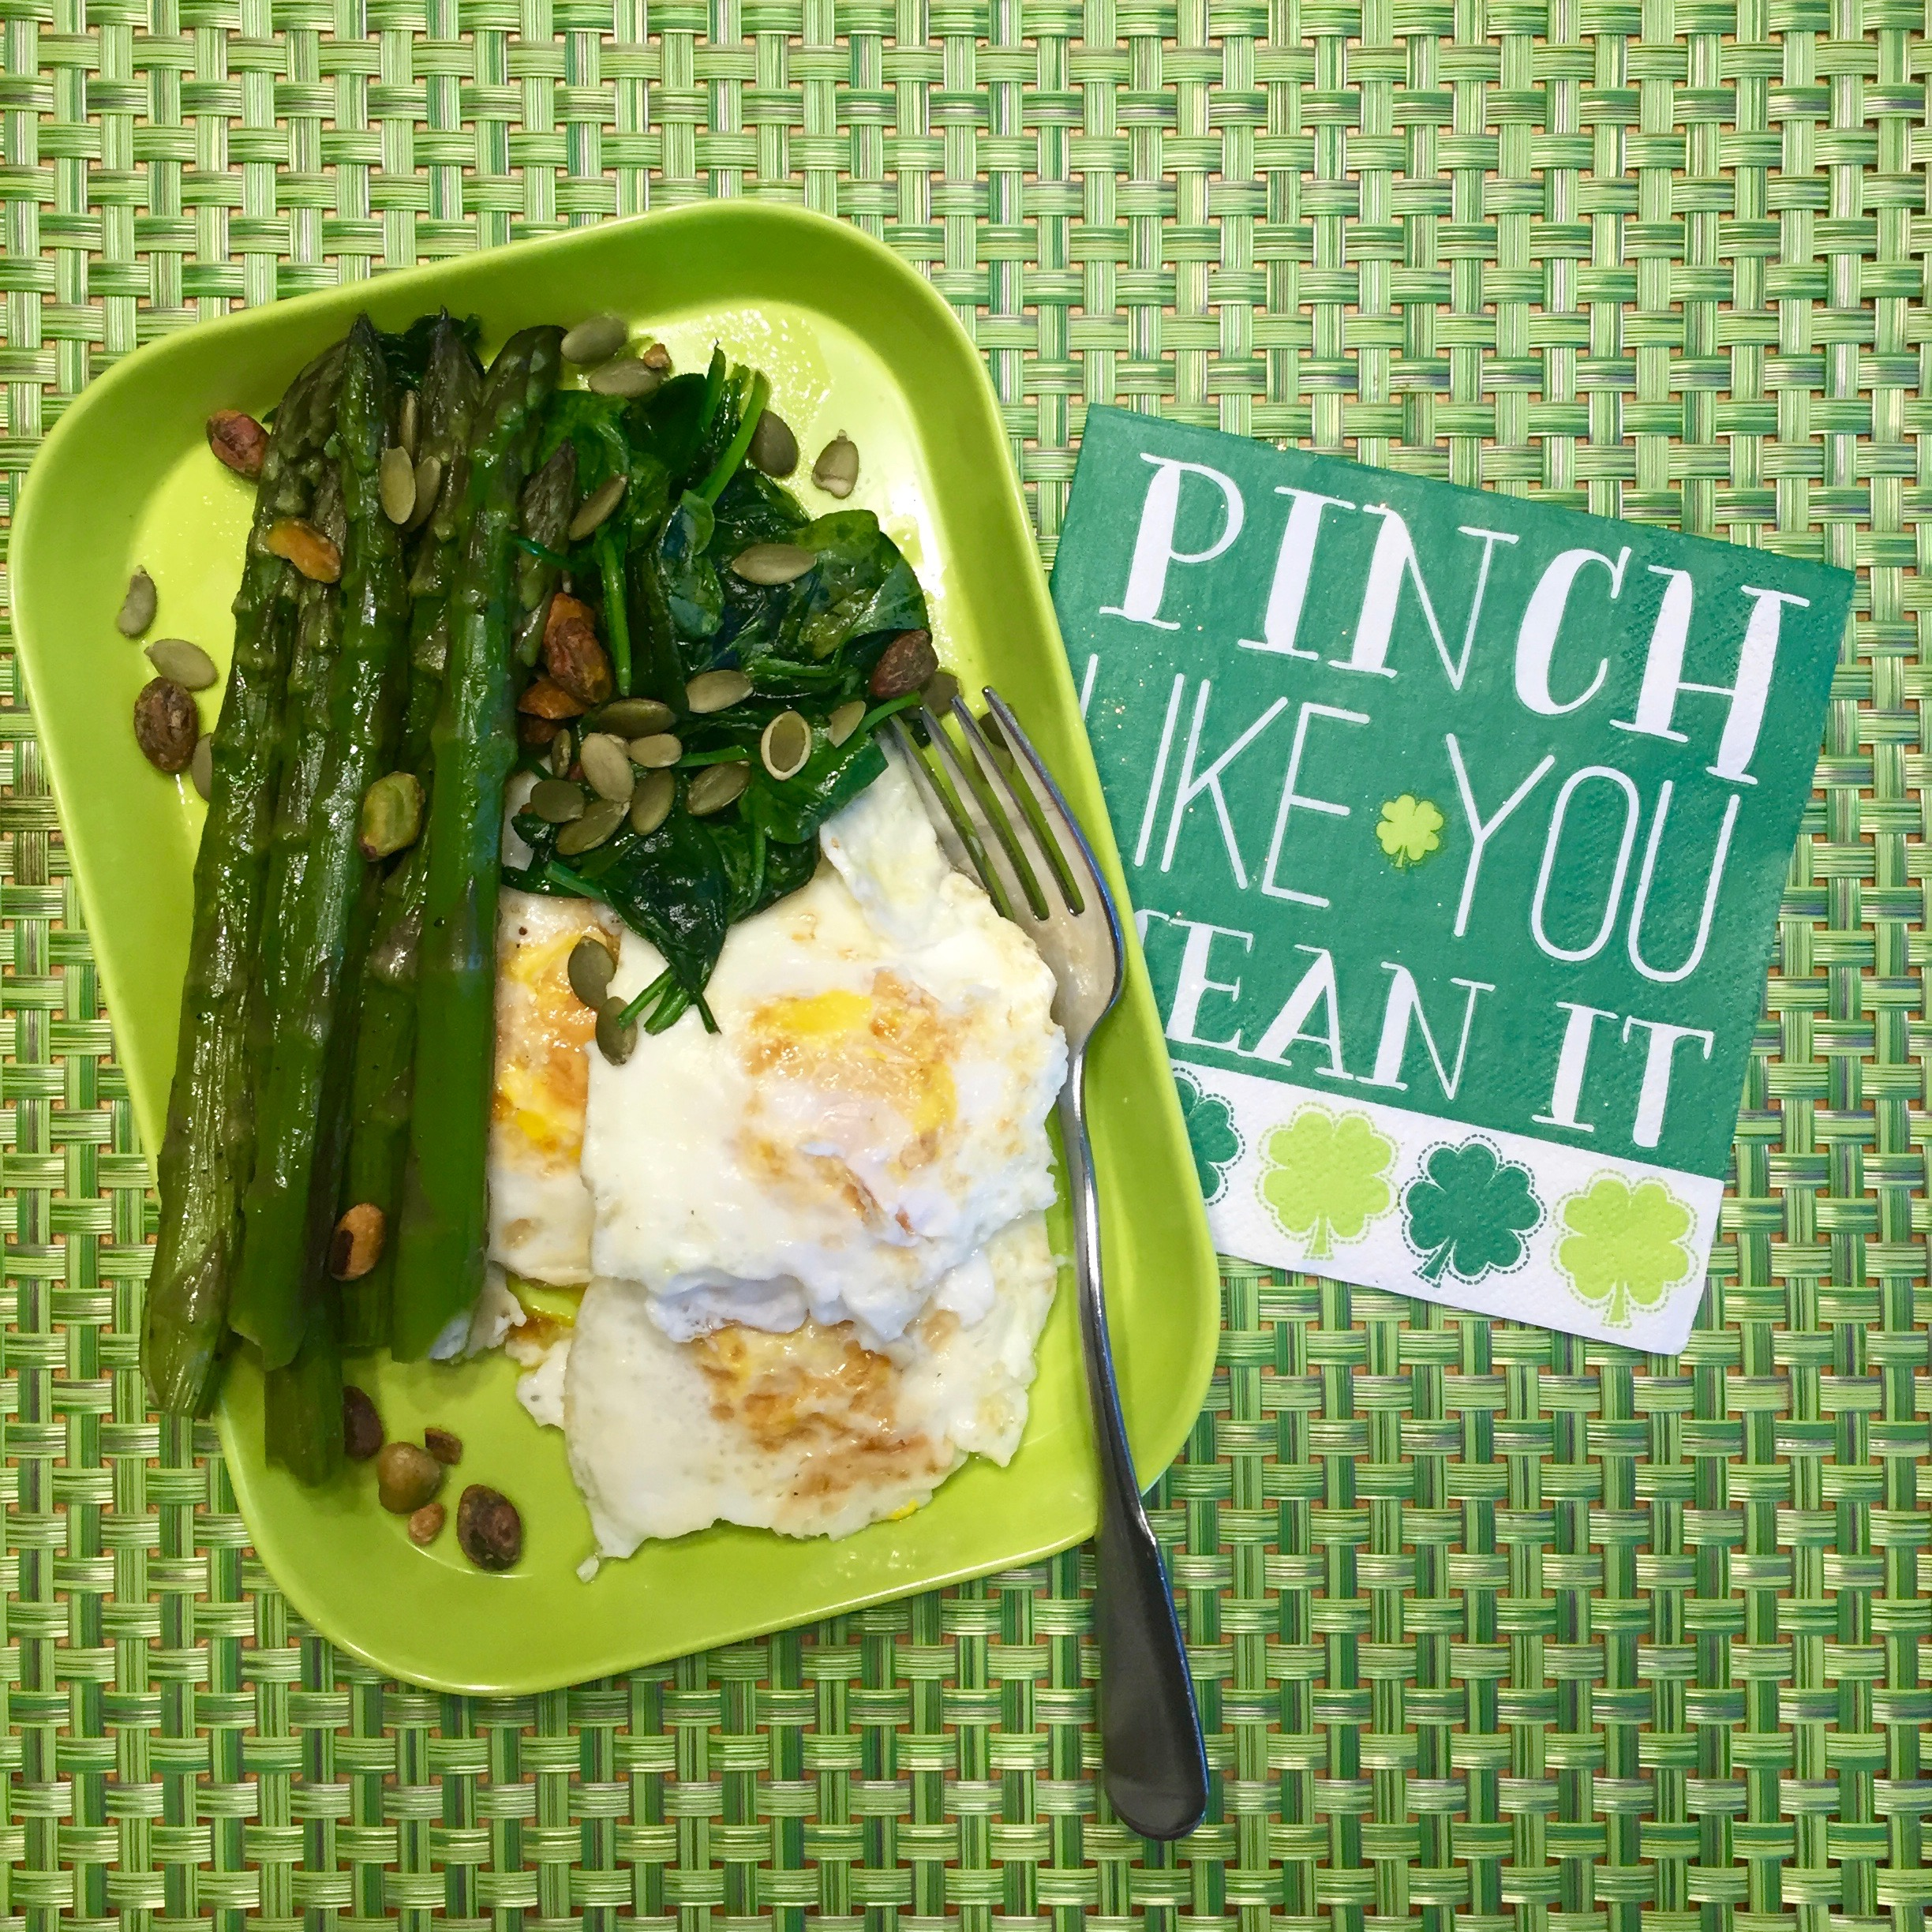 Breakfast: Three eggs + spinach (cooked in 1 T ghee)+ asparagus (left-over) + pepitas + pistachio nuts.